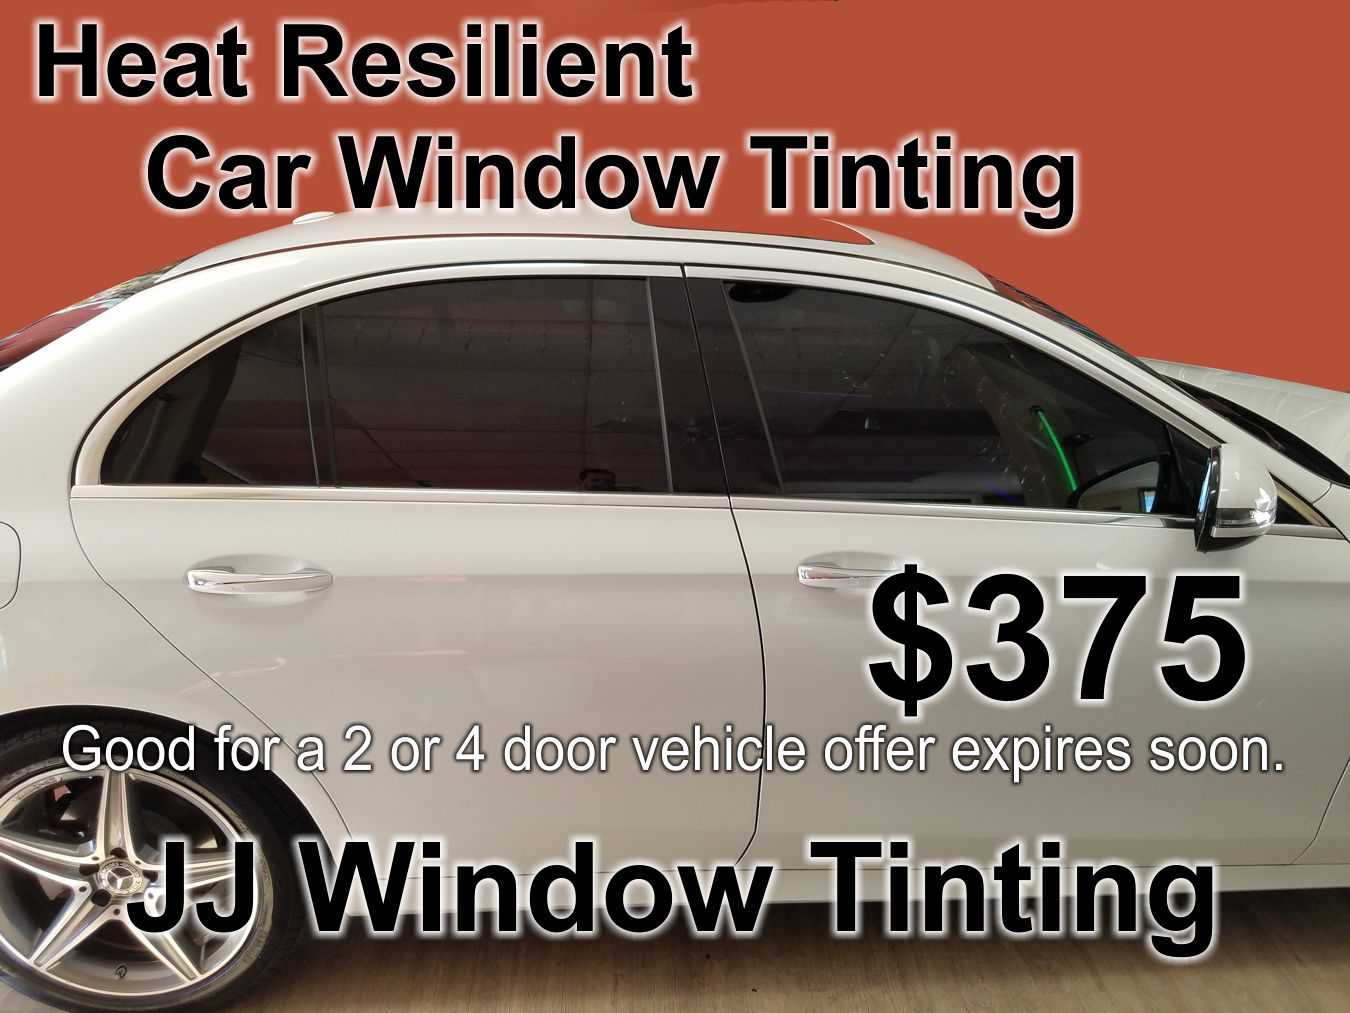 Heat Resilient Window Film JJ Window Tinting